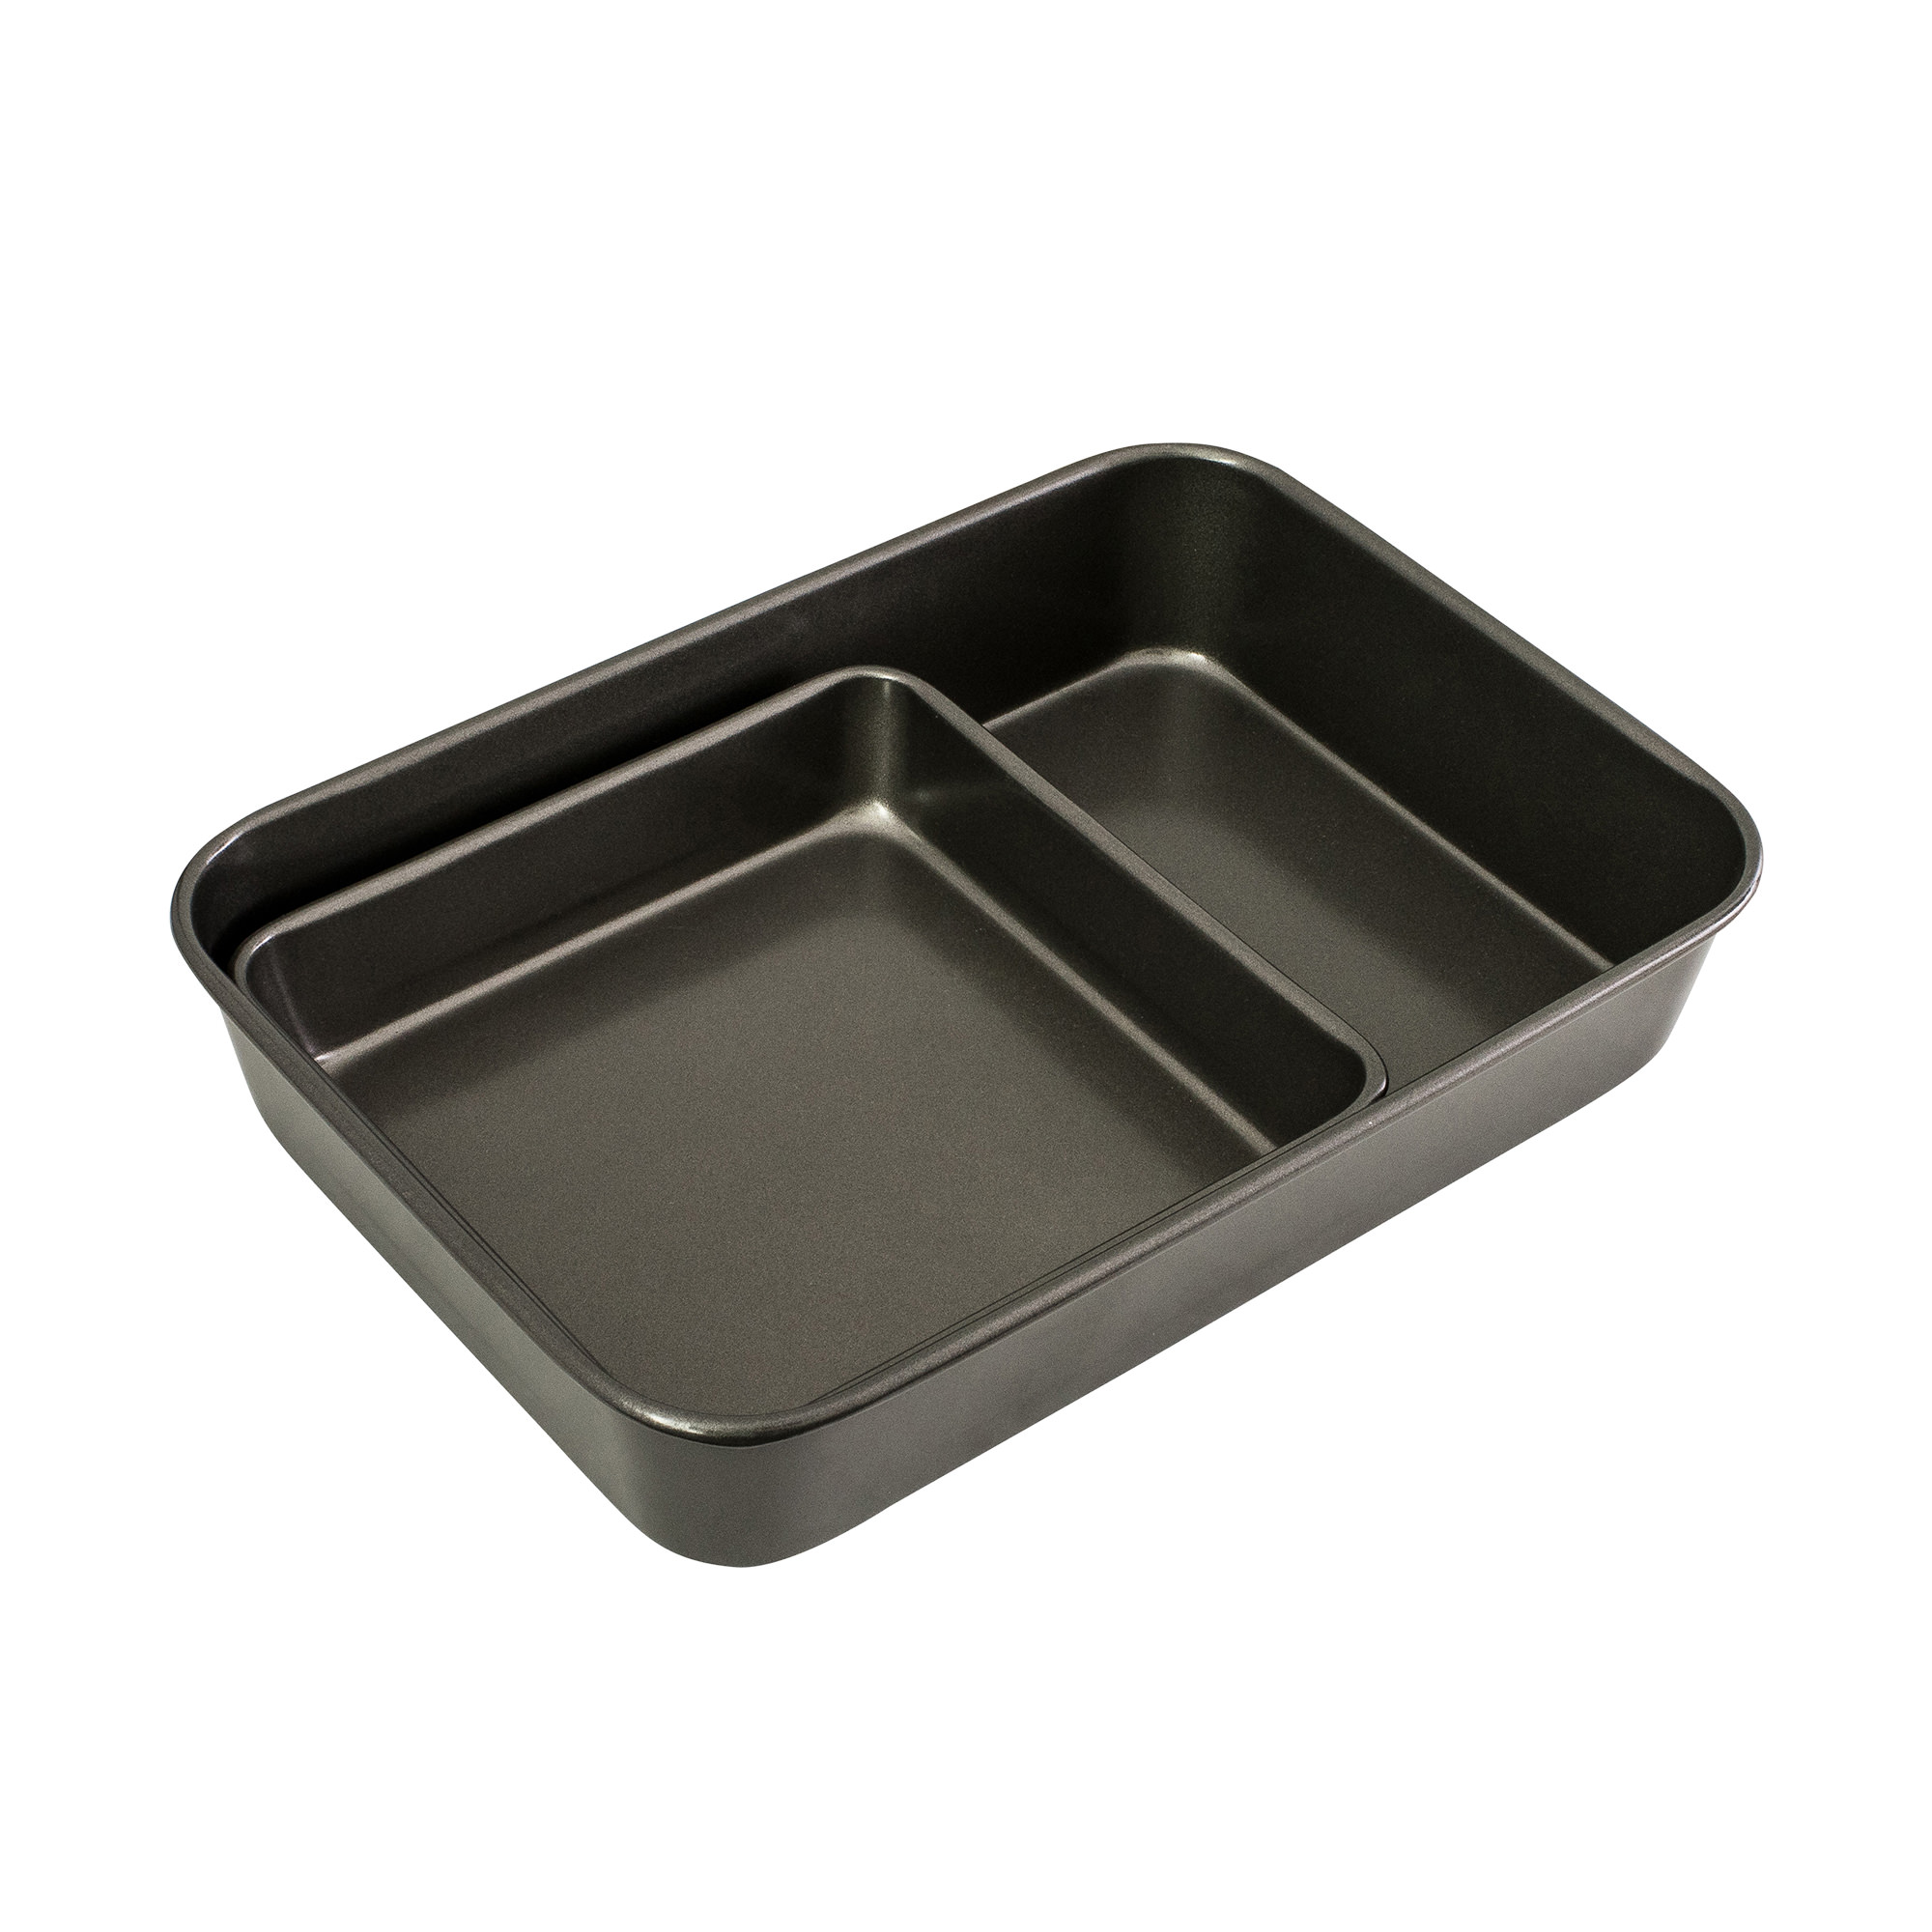 Bakemaster Non Stick Twin Roasting Pan & Square Bake Pan Pack Grey